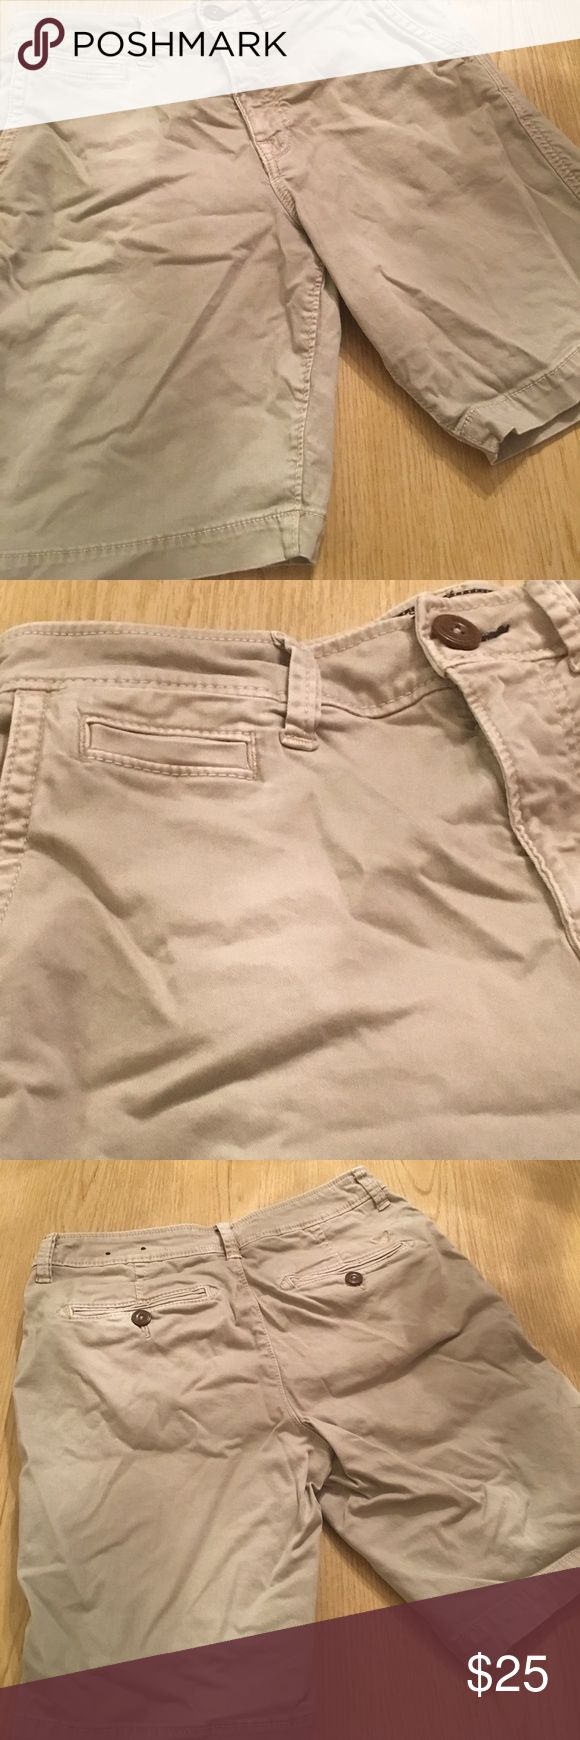 Guys American Eagle Outfitters Cargo Shorts Active Flex Cargo Shorts.  Size US30. Khaki. Only wore 1 time for a few hours! American Eagle Outfitters Shorts Cargo